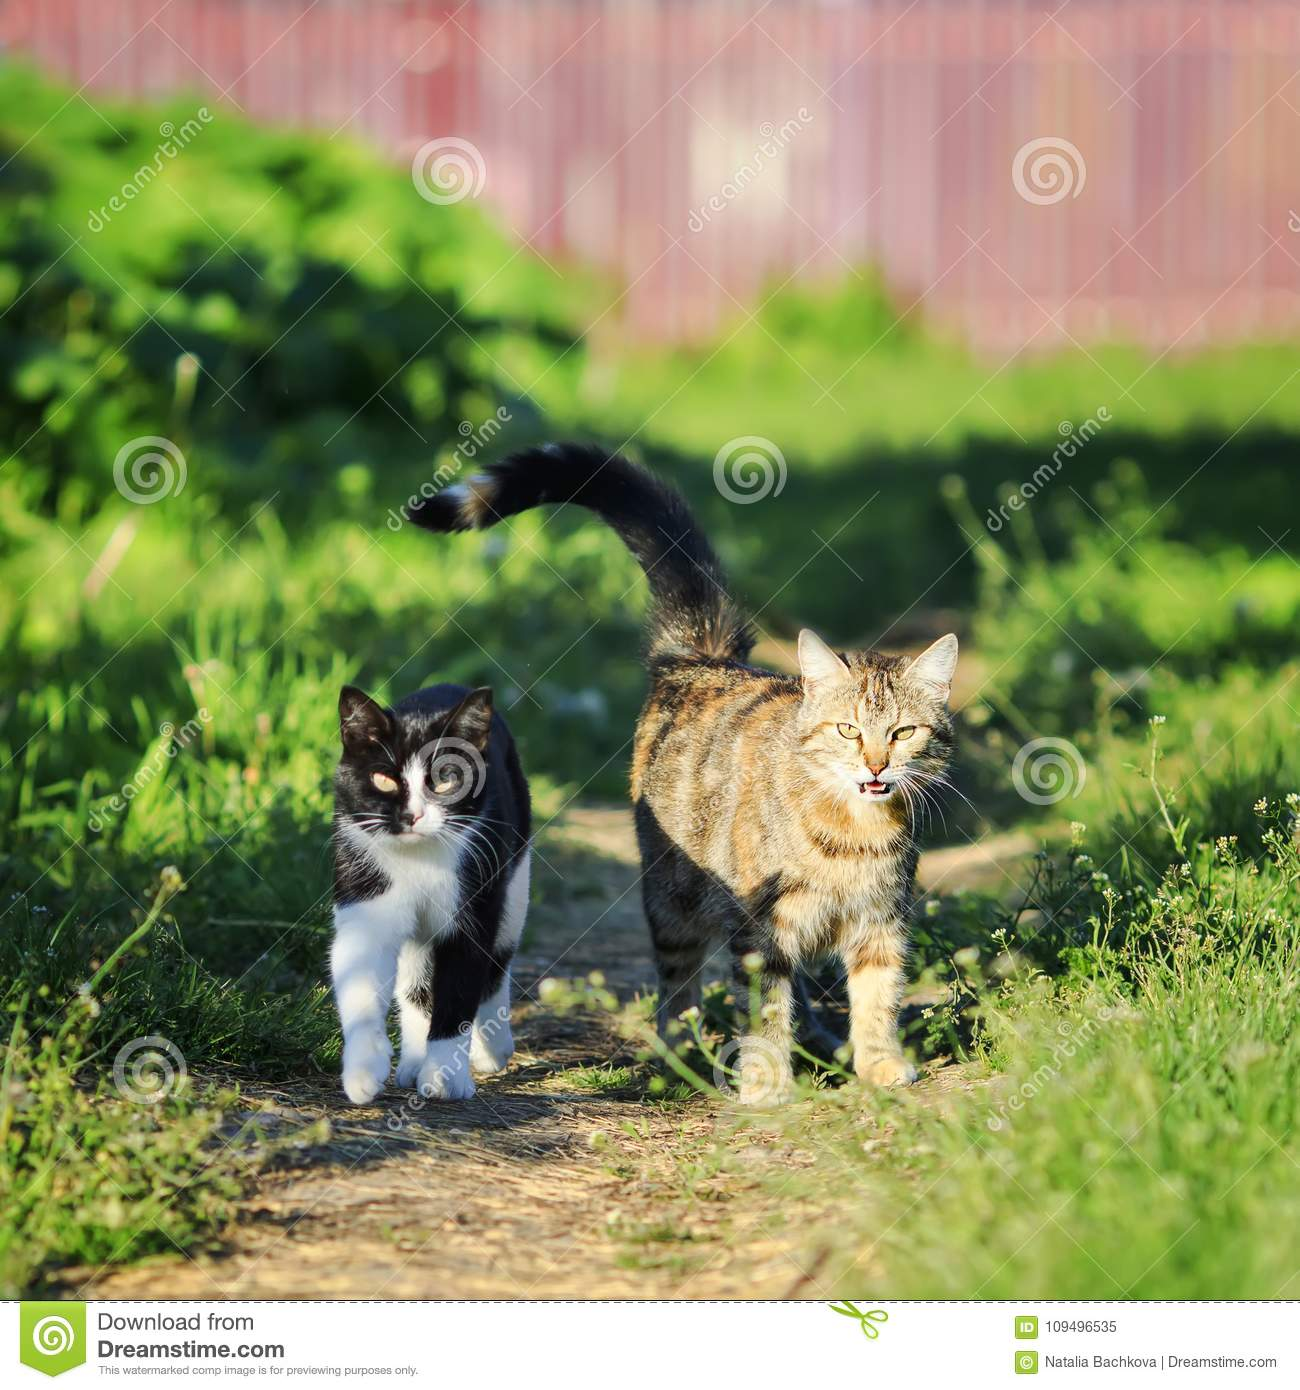 Couple of funny cute cats walking along the path in the spring